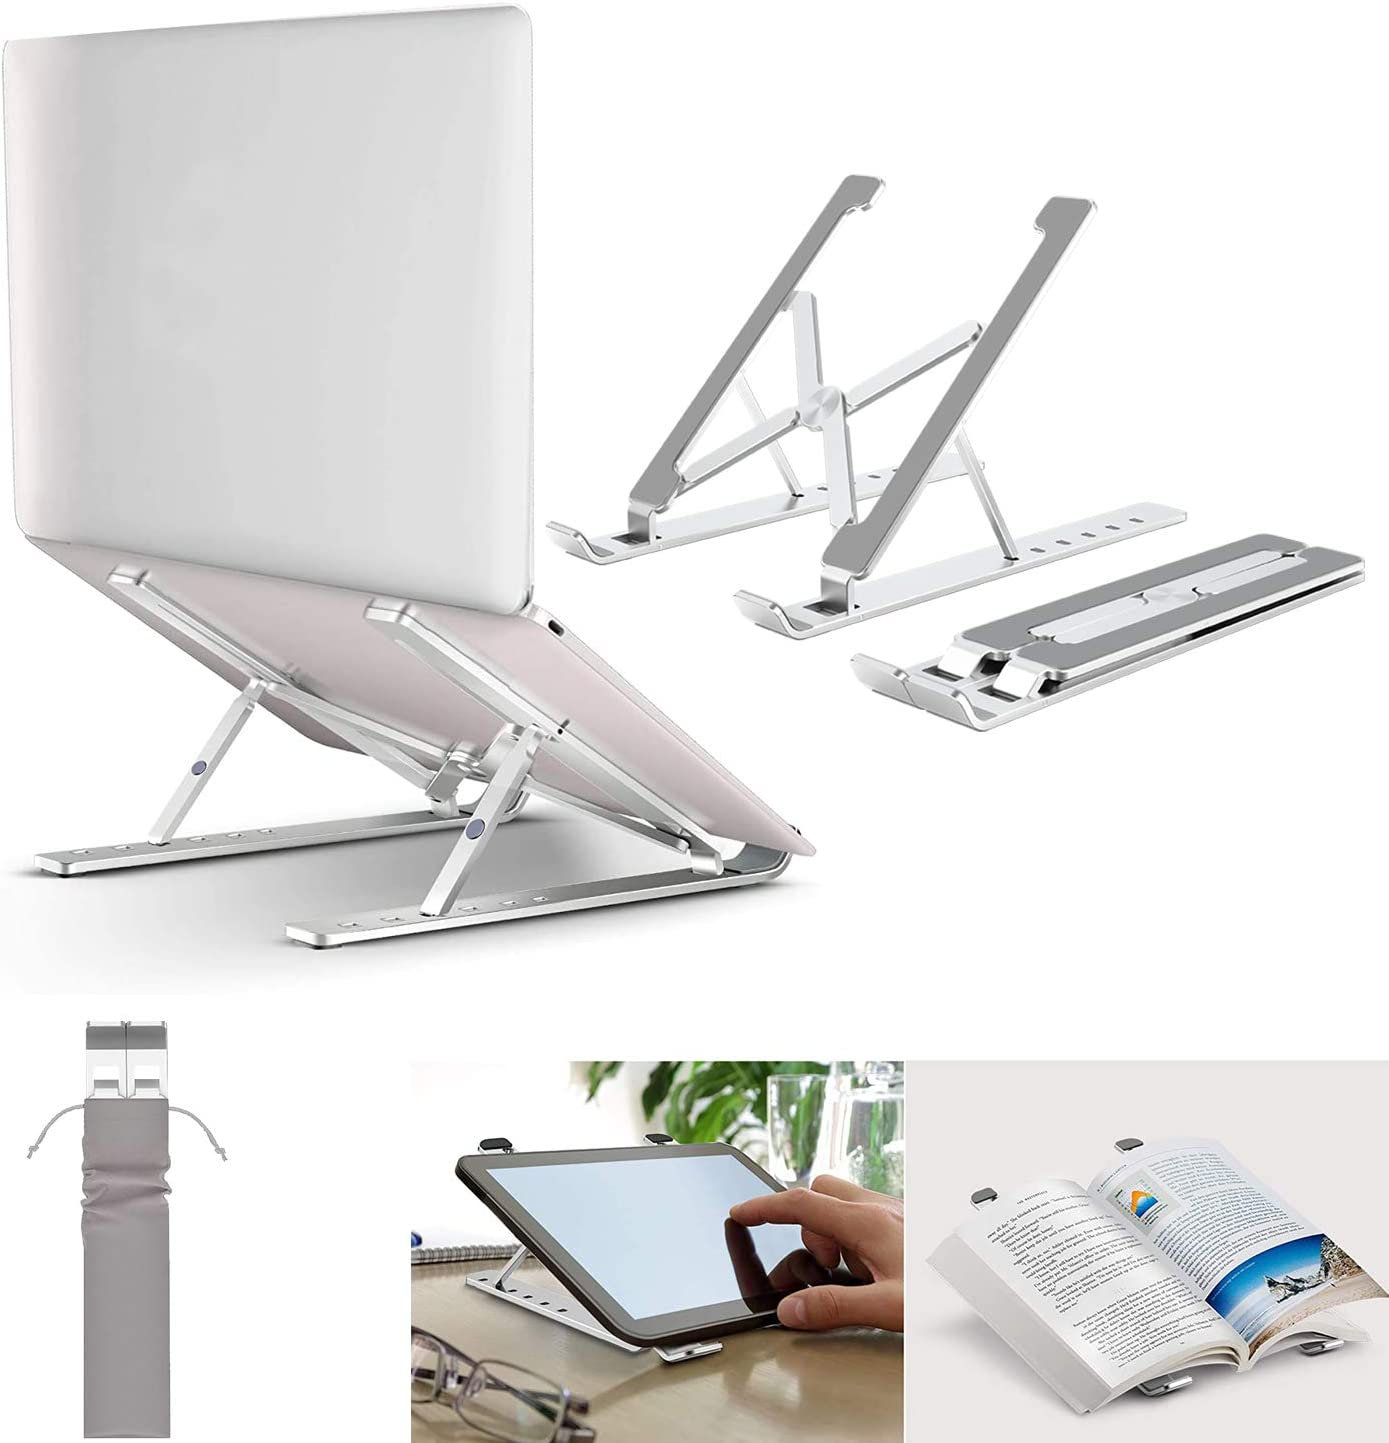 "Ergonomic Laptop Stand,GOODBONG Adjustable Aluminum Laptop Computer Stand Tablet Stand,Ergonomic Foldable Portable Desktop Holder Compatible with MacBook Air Pro, Dell XPS, HP, 10-15.6"" Laptops"